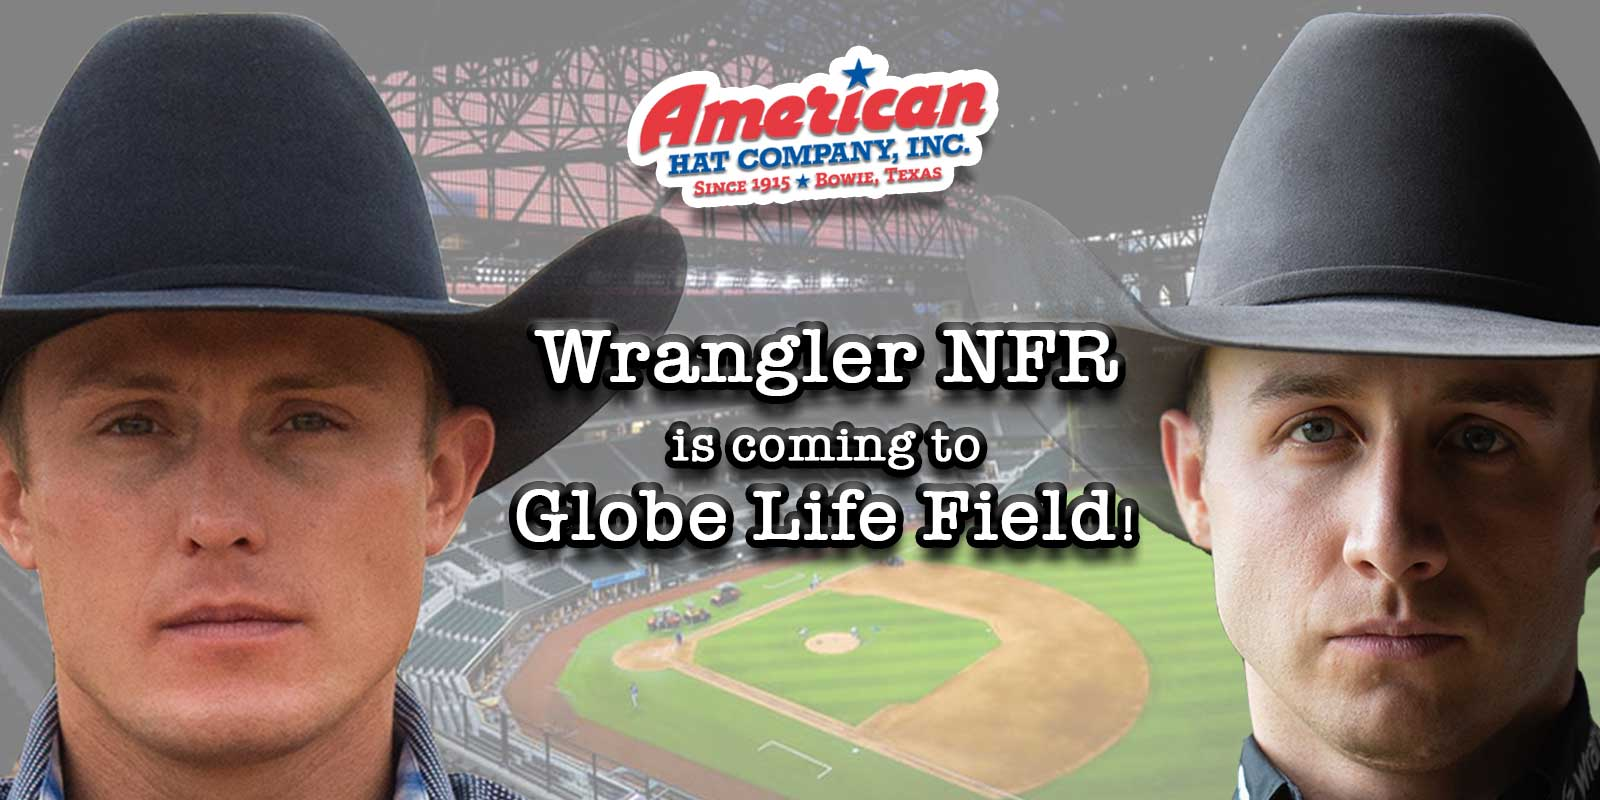 American Hat Company American Hat Co positive times nfr wnfr wrangler national finals rodeo Las Vegas dickies arena at&t stadium Dallas Cowboys rodeo